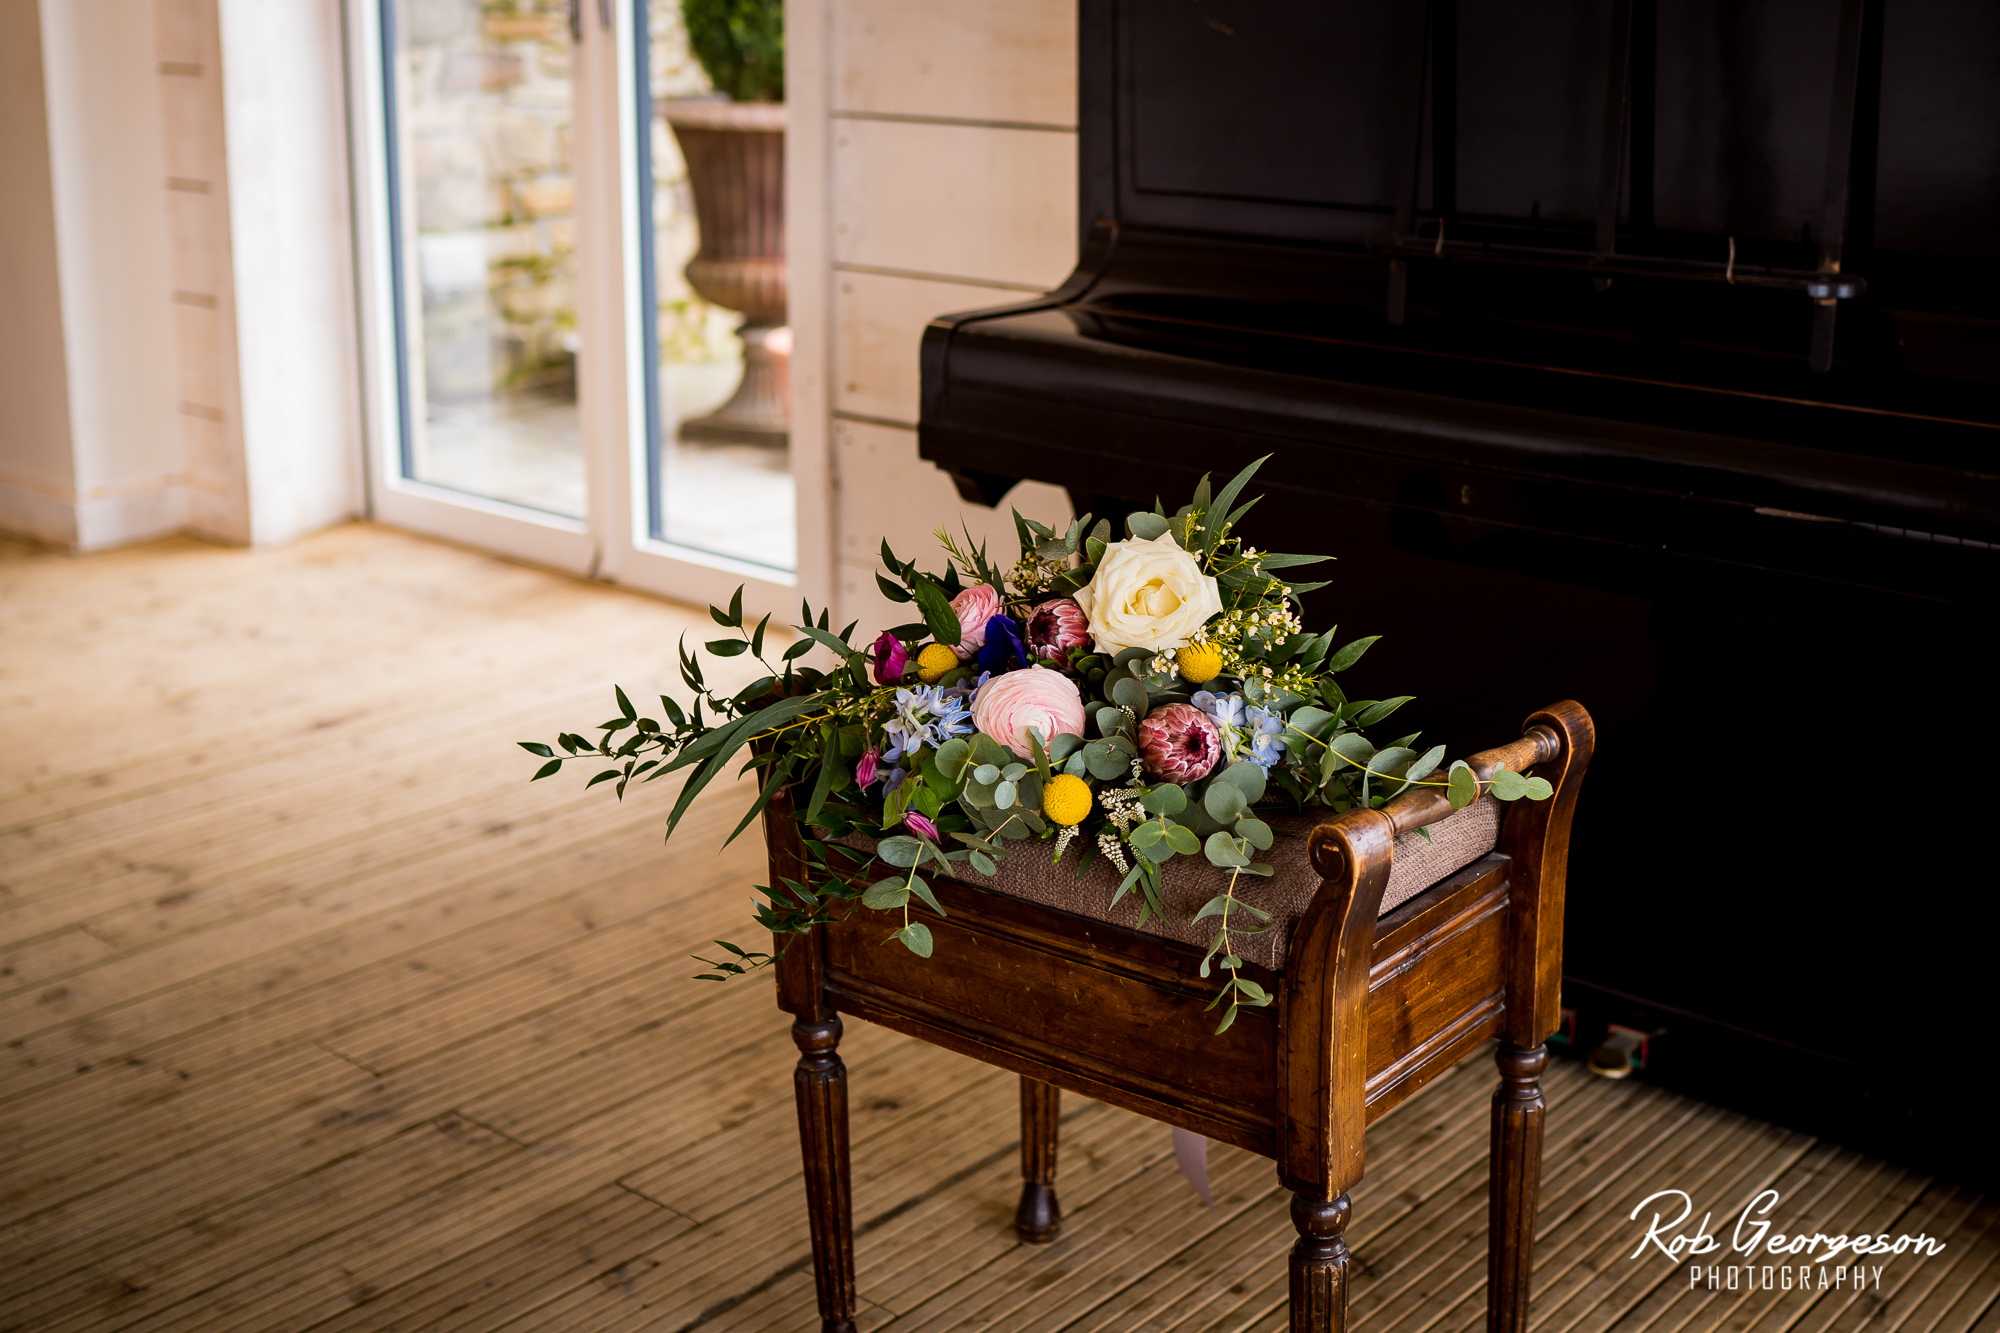 bride bouquet of flowers on a piano stool